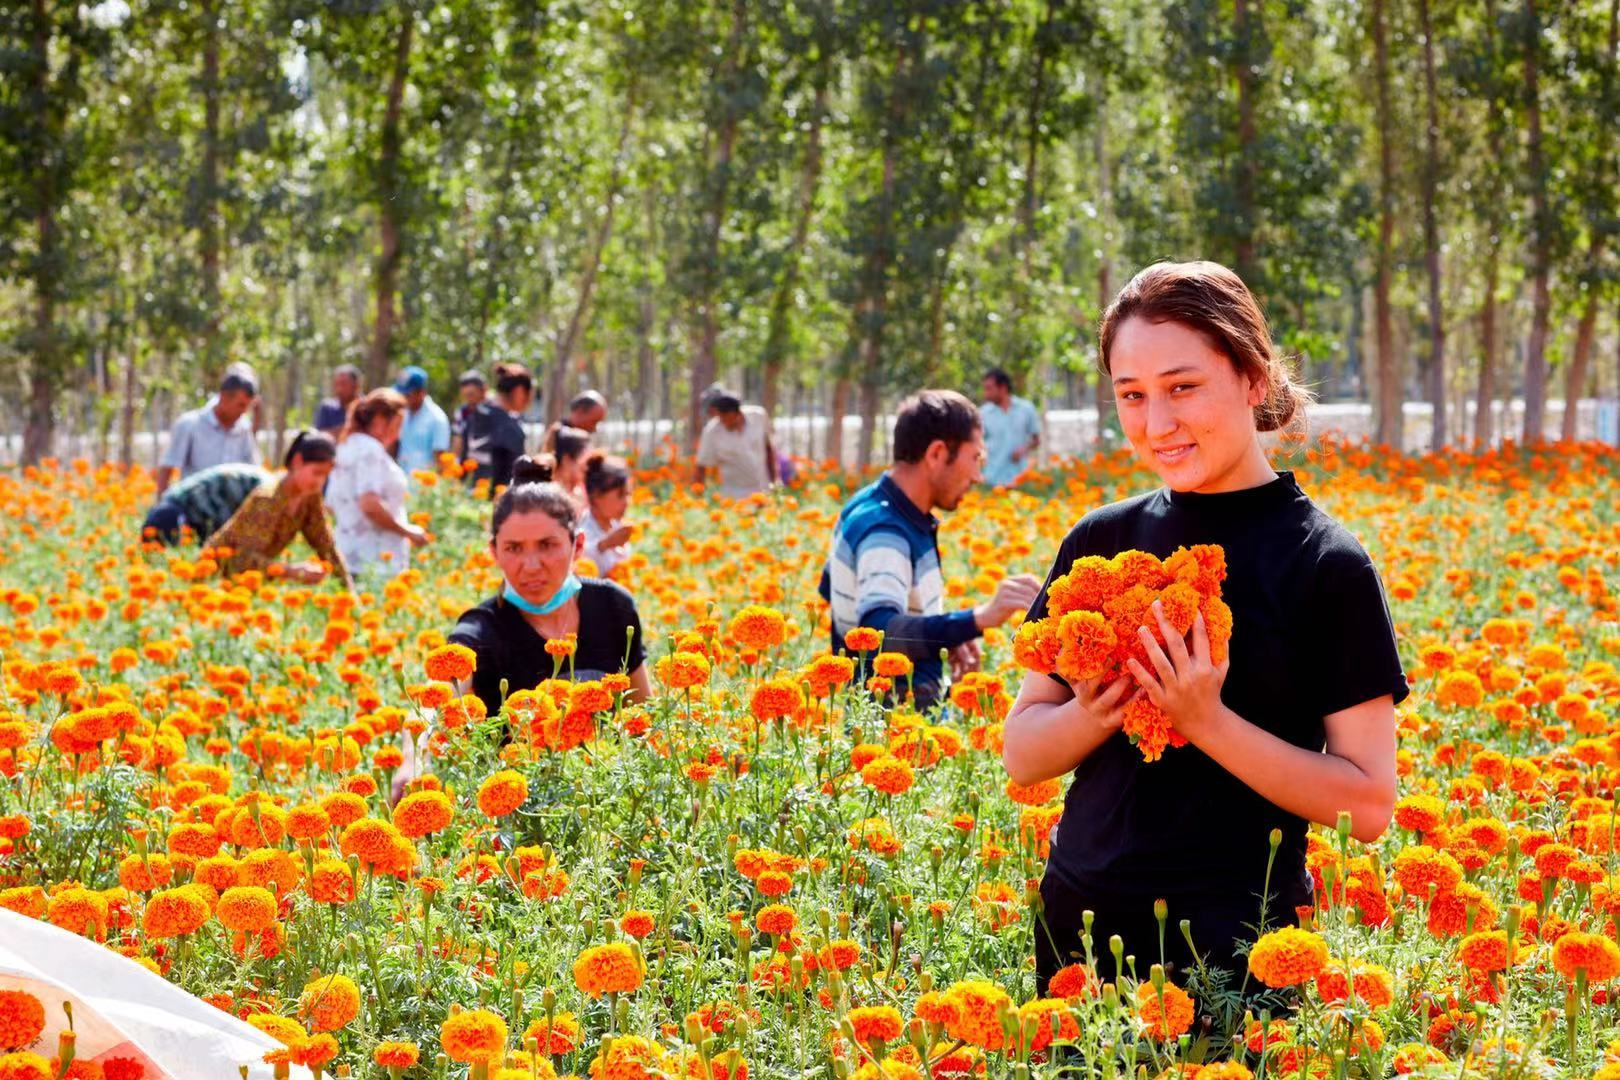 Golden marigolds blossom in Shache County